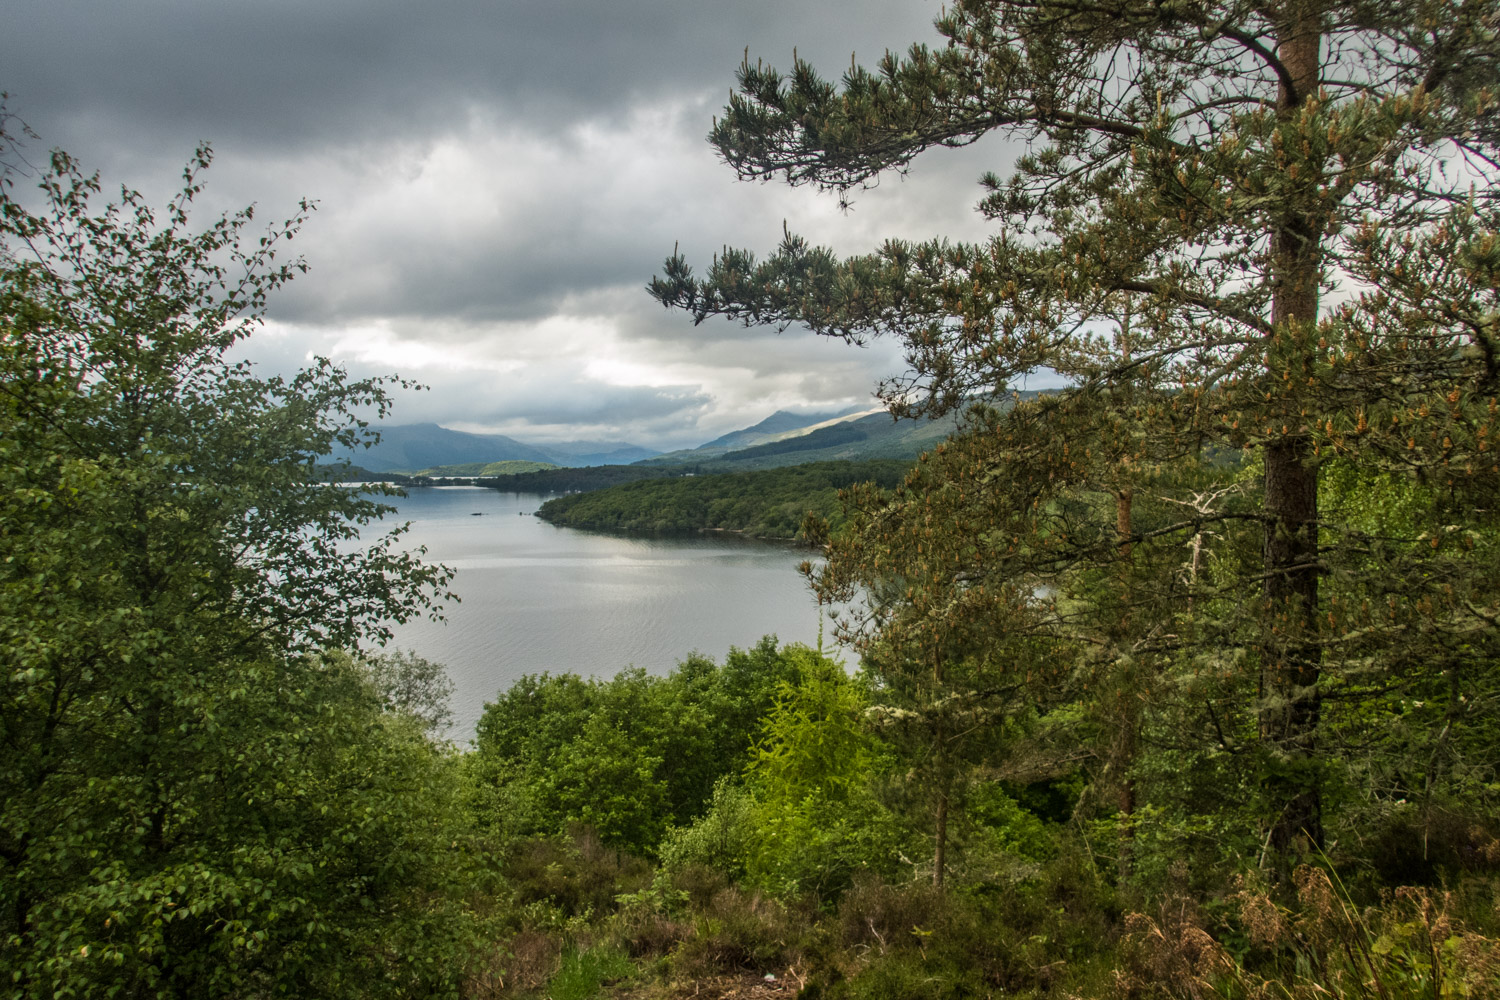 Looking down to a cloud covered Loch Lomond.